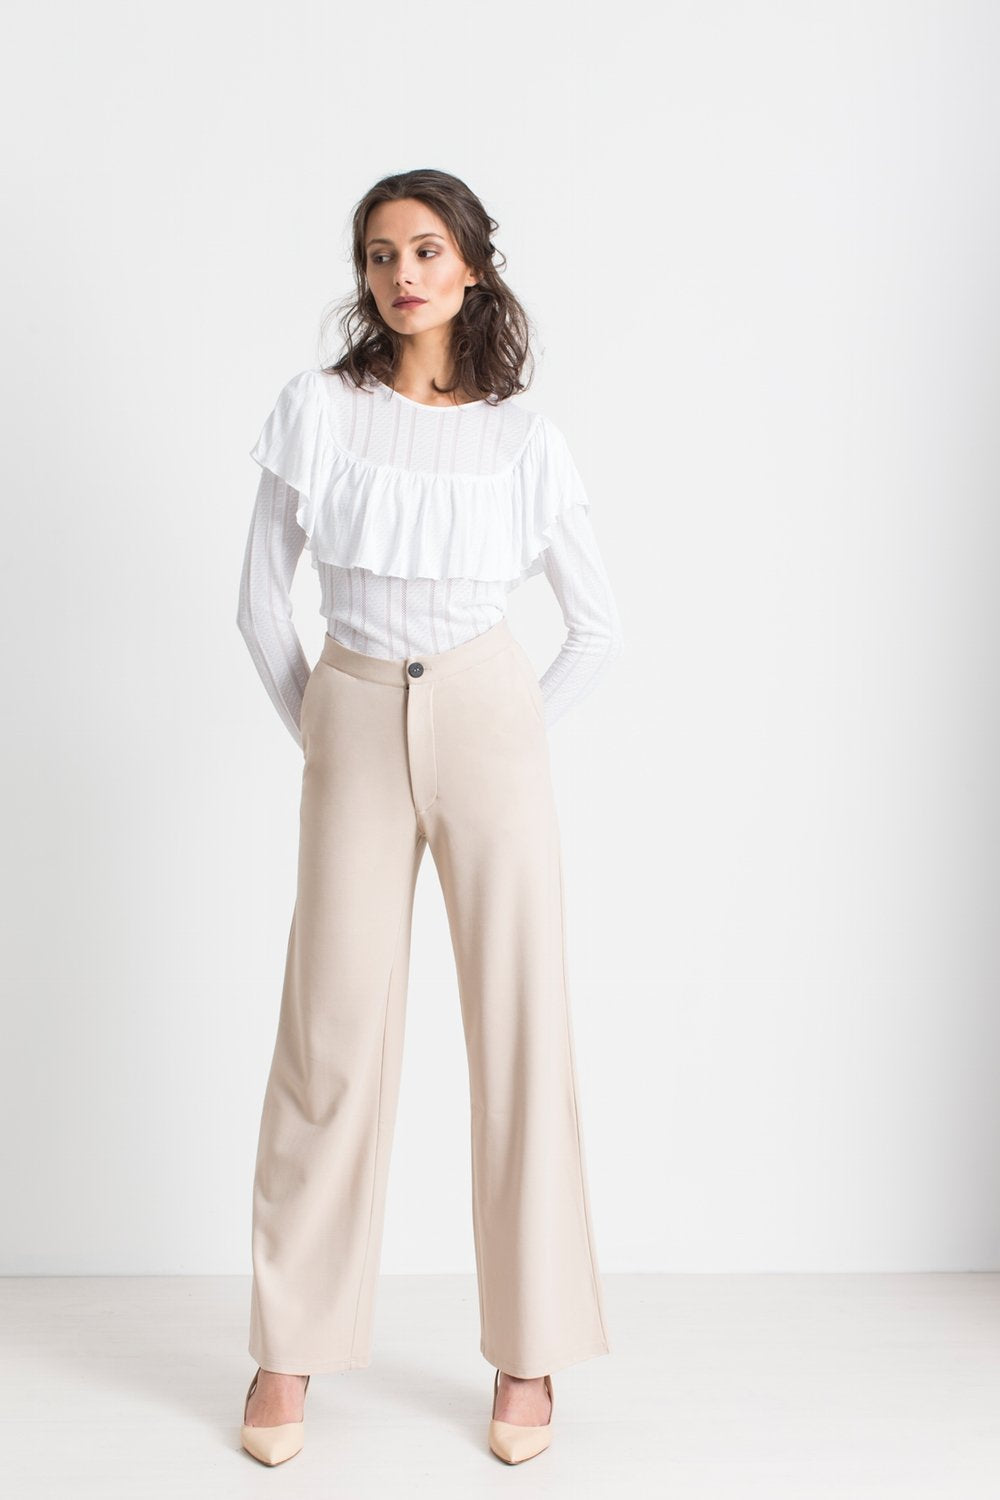 MORE THAN  50% OFF Pagoda Sand pants